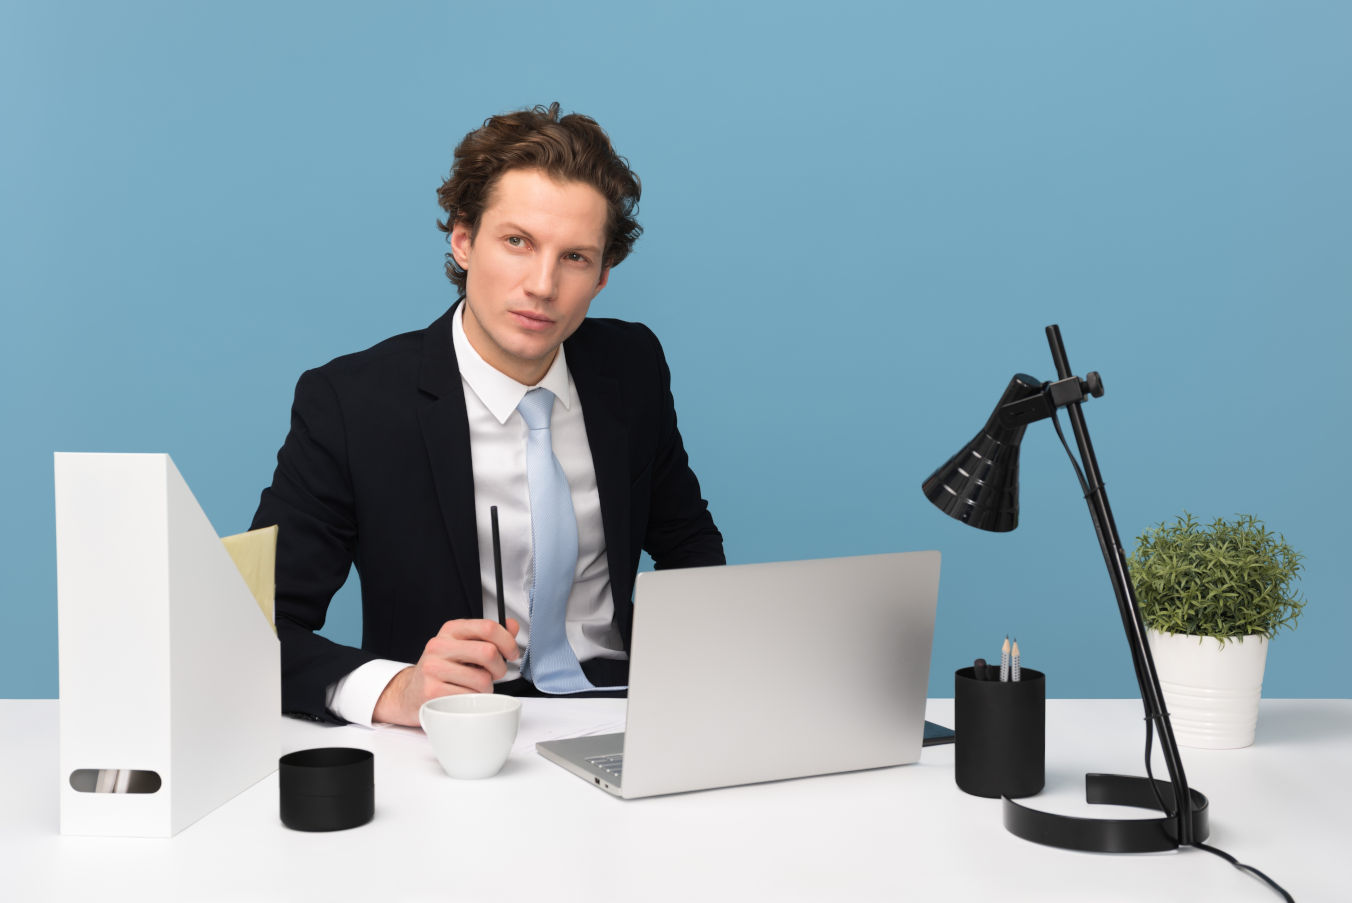 Job interviewer sitting behind a desk with a critical expression.